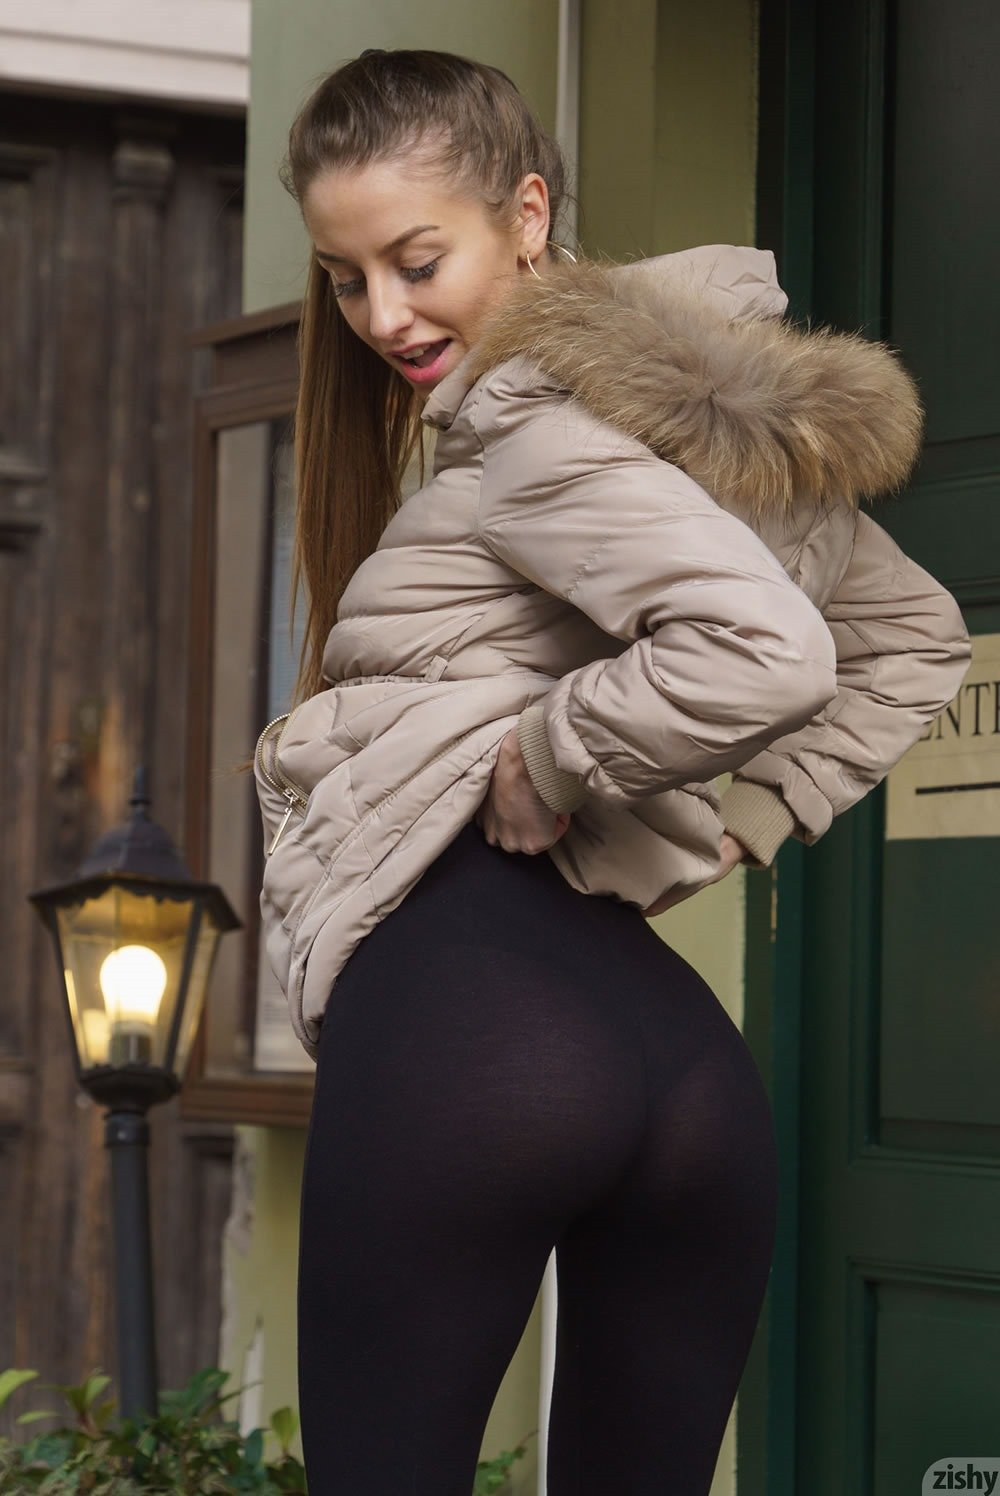 Lenka Samkova Perfect Ass - Fine Hotties - Hot Naked Girls, Celebrities, and HD Porn Videos